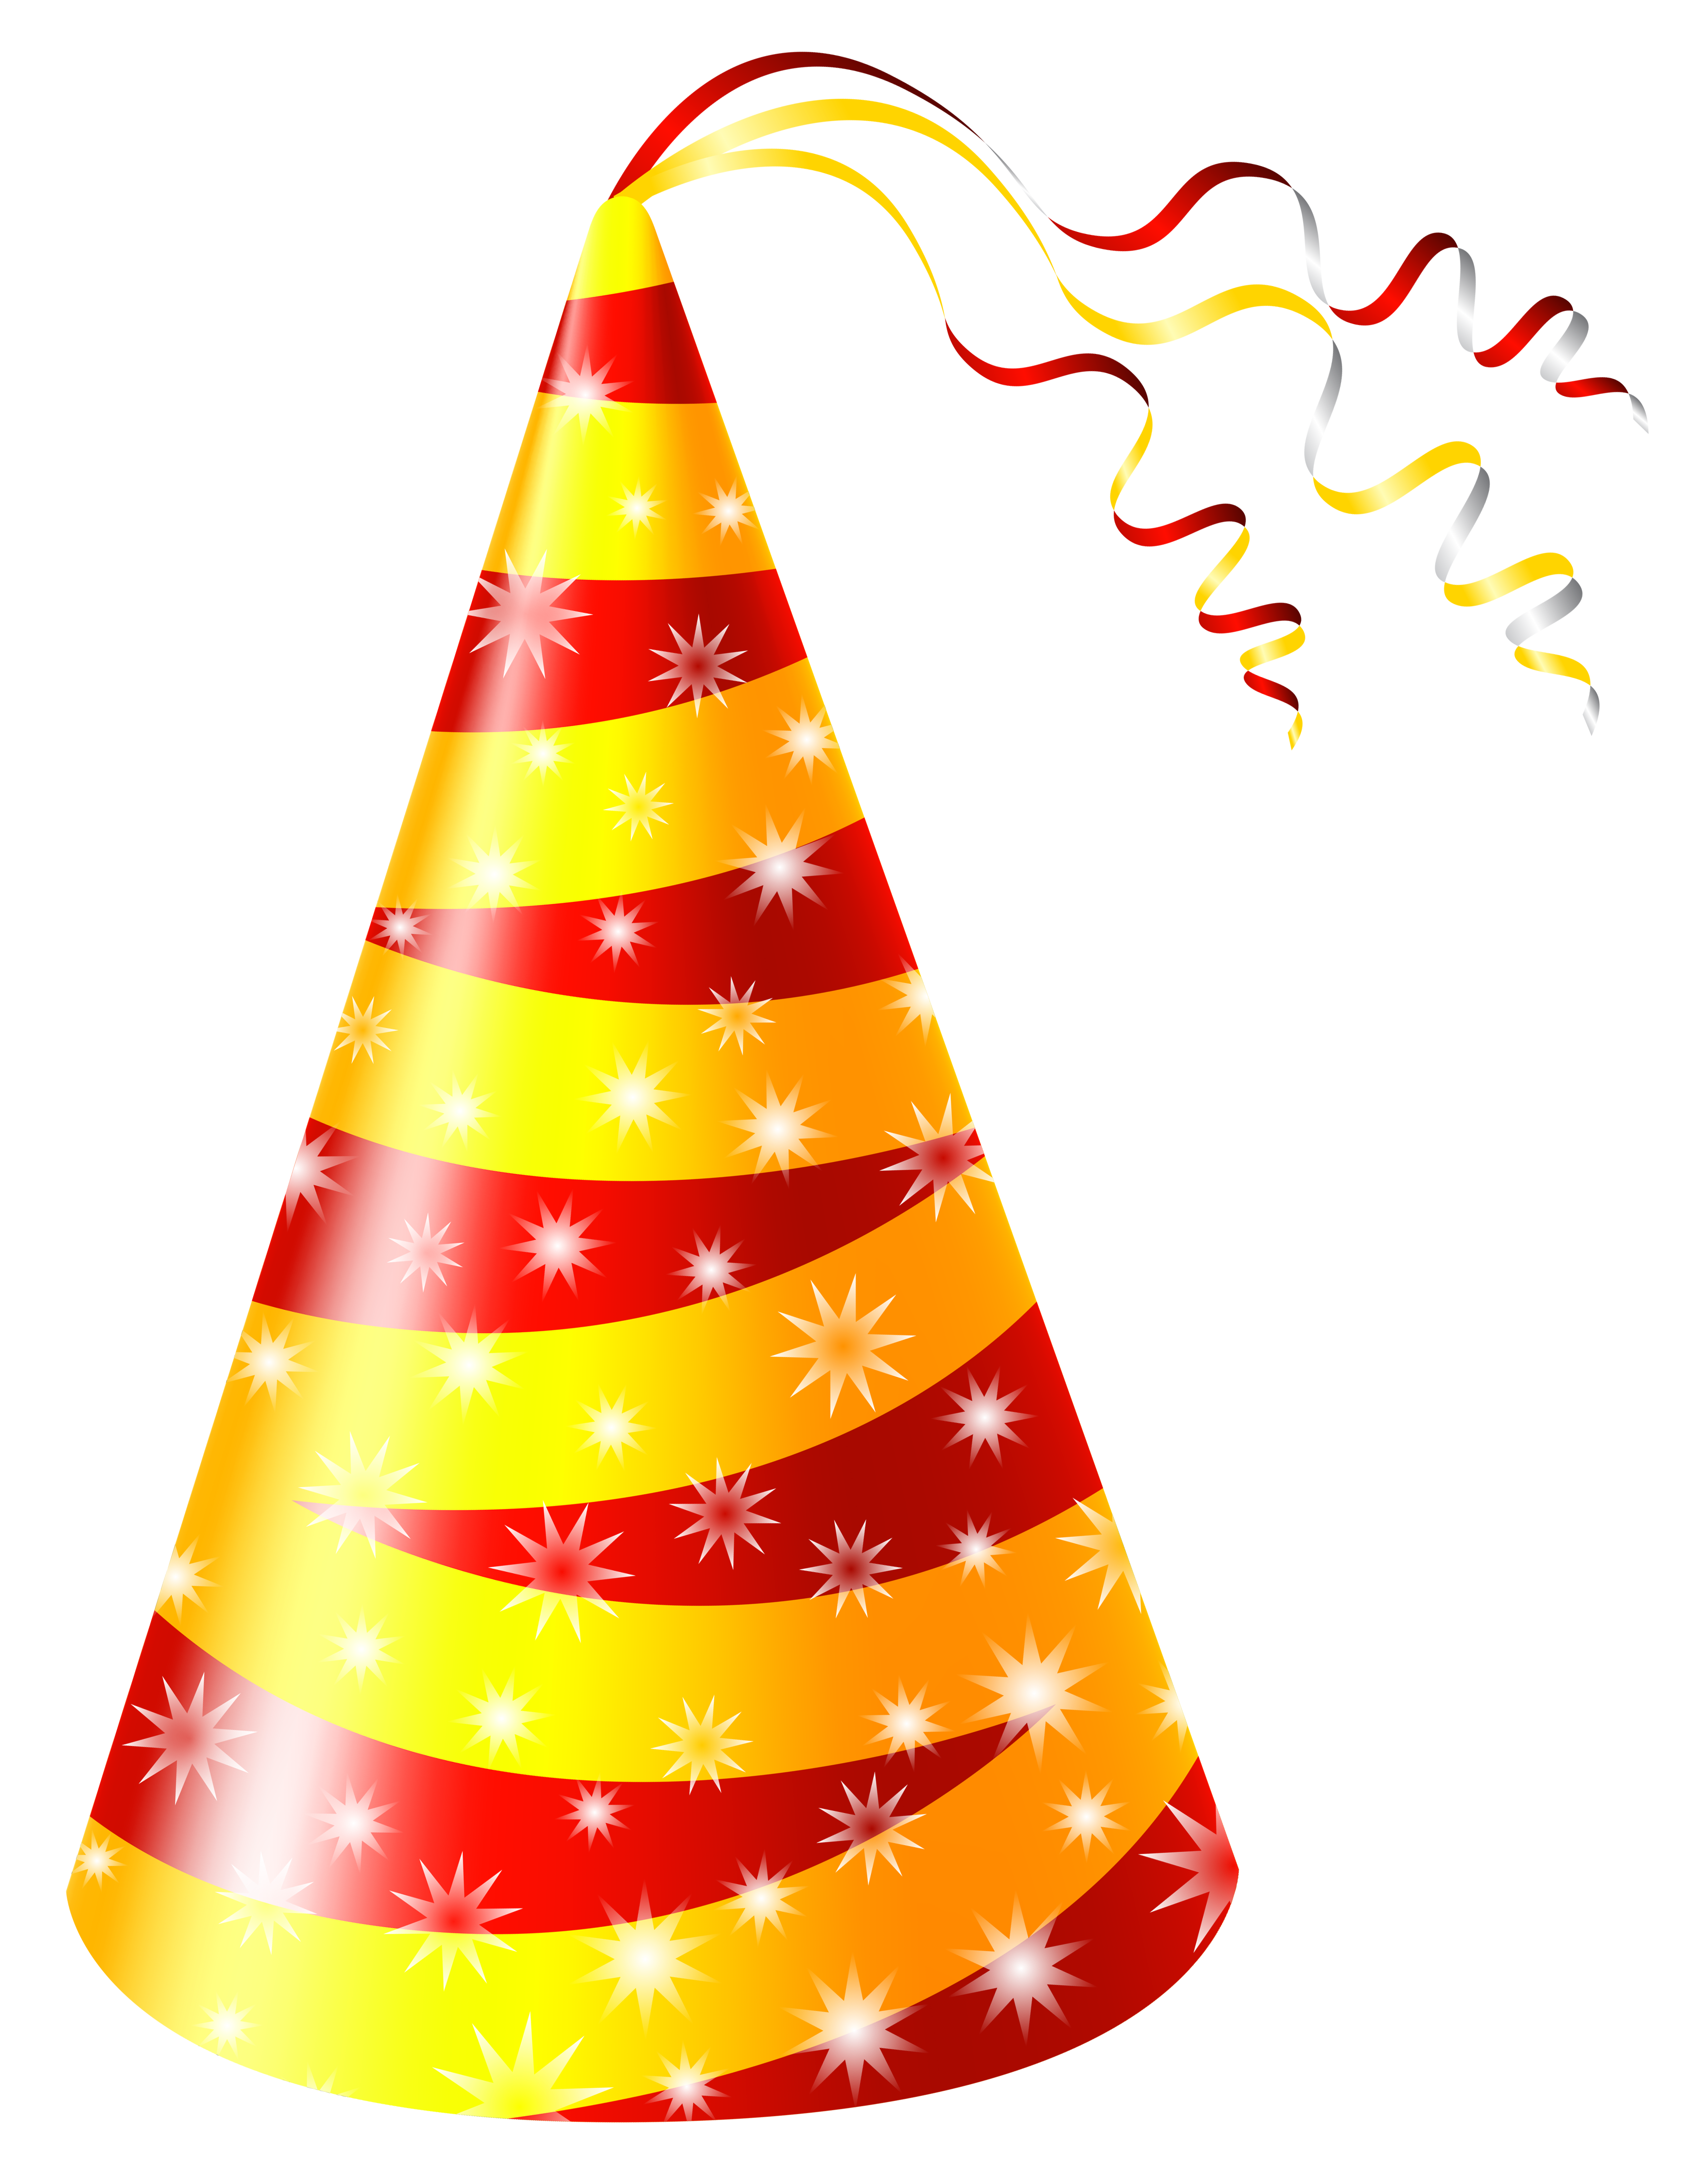 Birthday hat png transparent. Free images only yellow